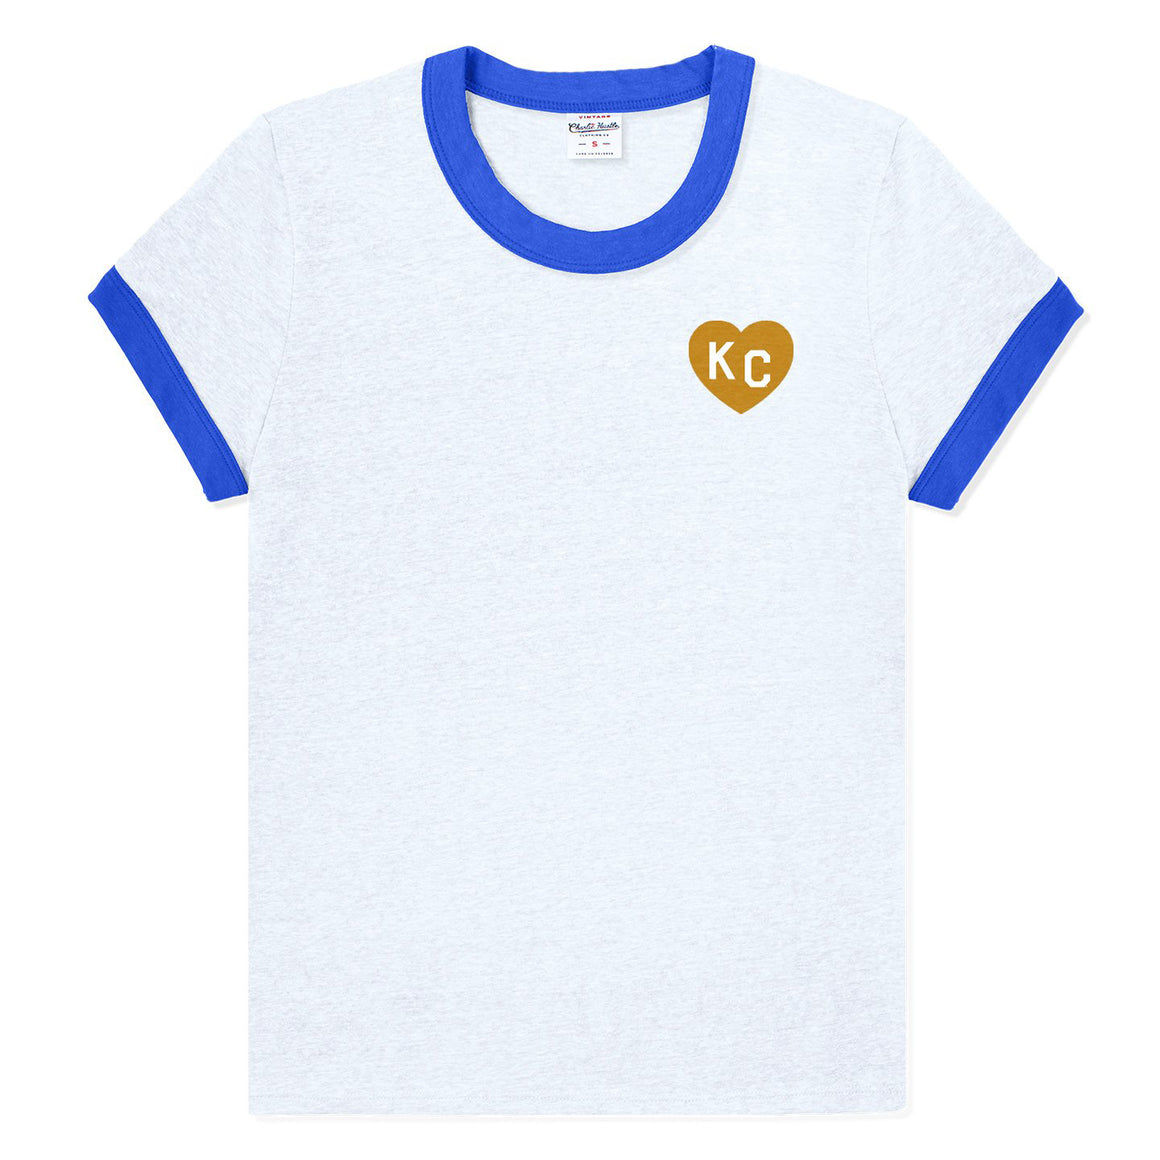 CHARLIE HUSTLE | WOMEN'S CROWNTOWN HEART